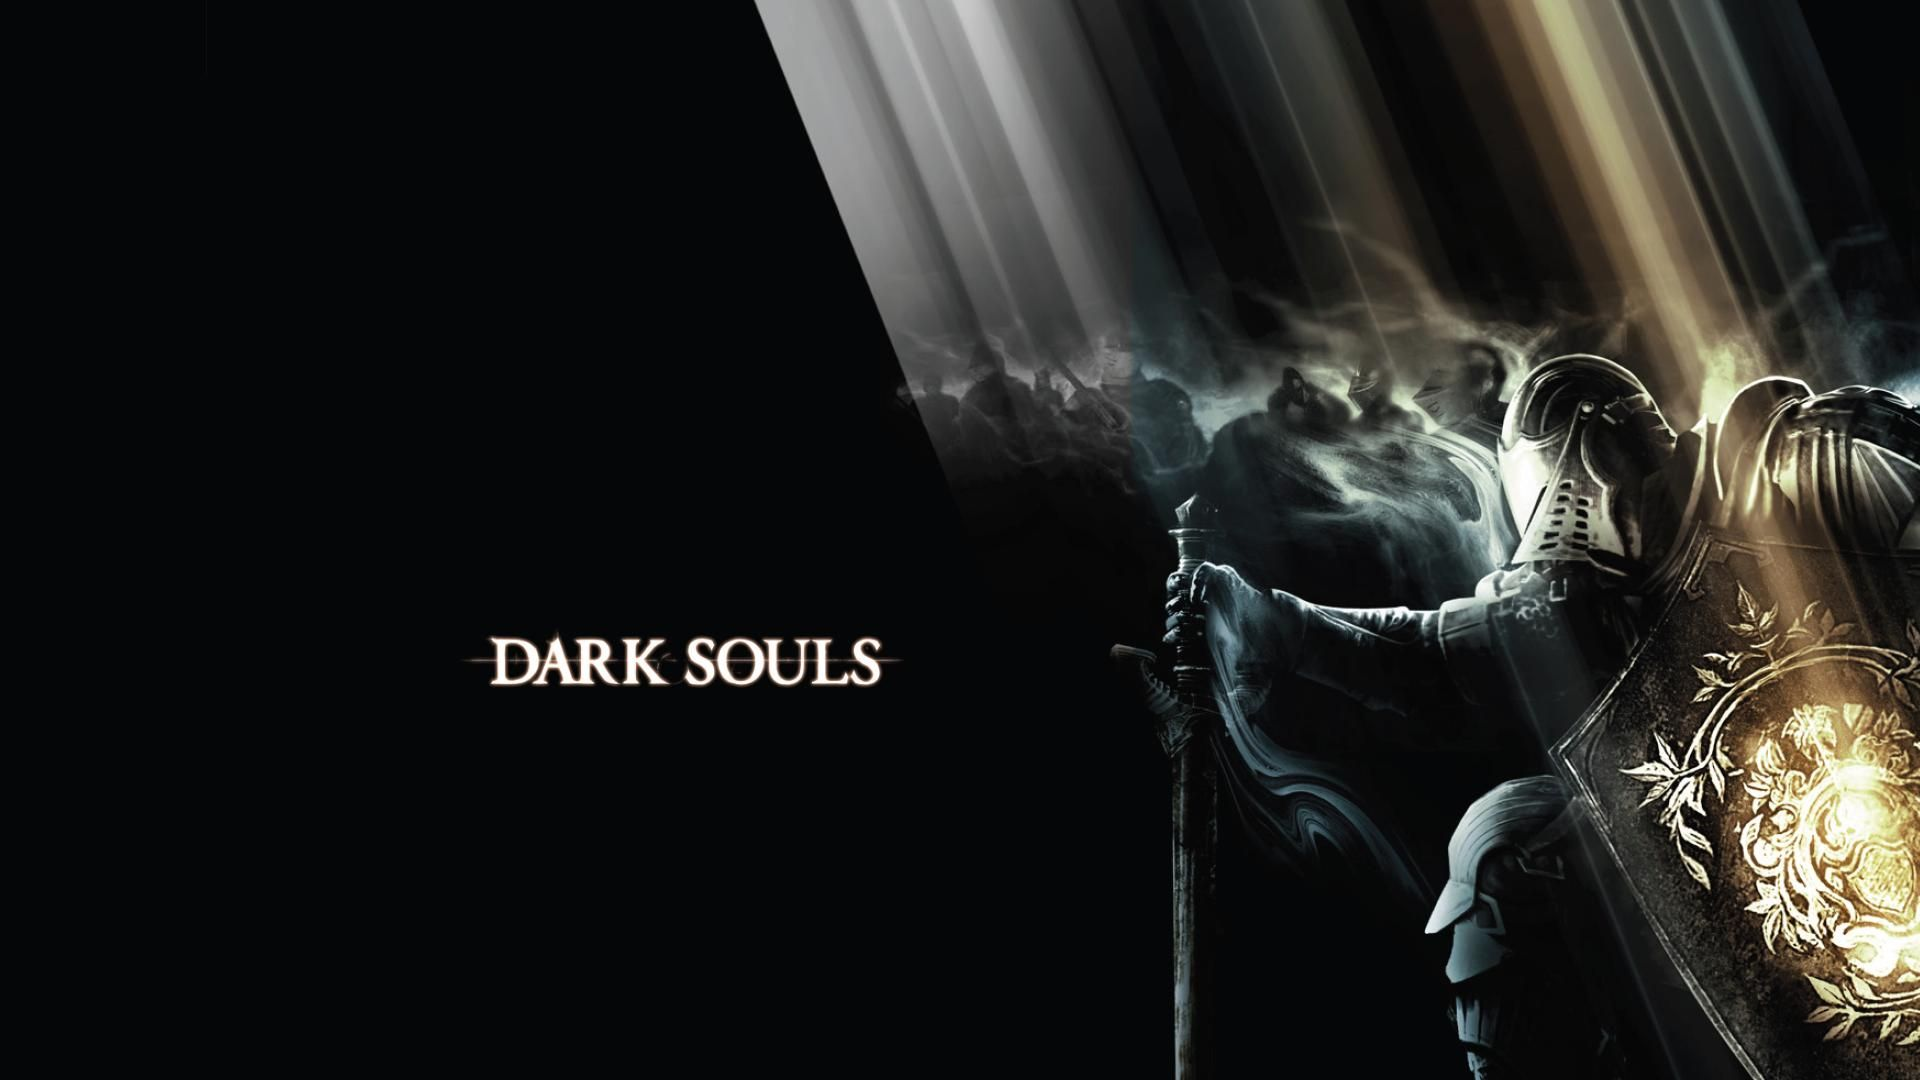 dark souls 3 hd wallpaper, dark souls sif wallpaper